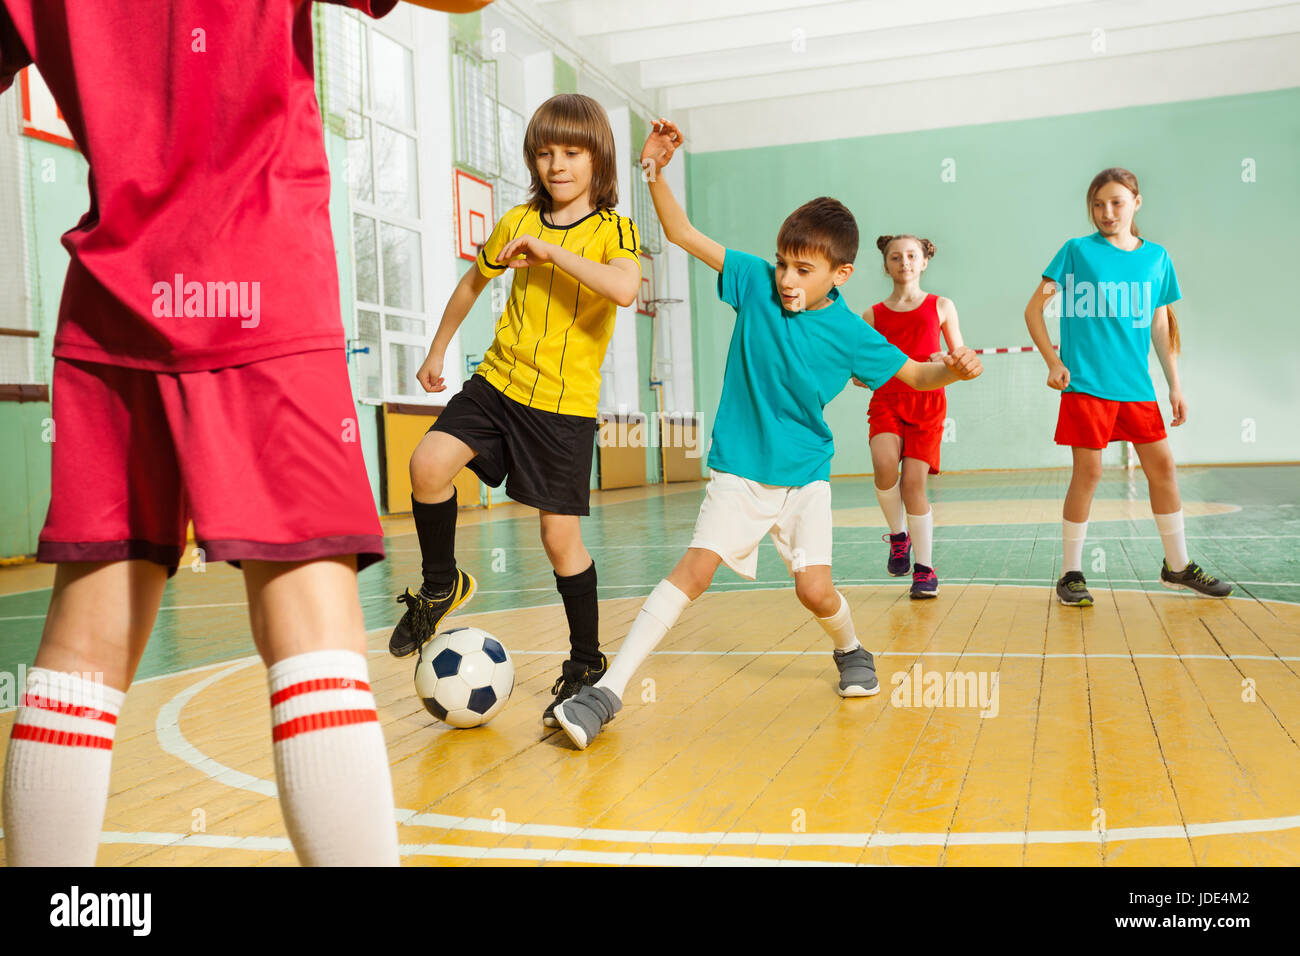 Portrait of preteen boys and girls playing football in school gymnasium - Stock Image